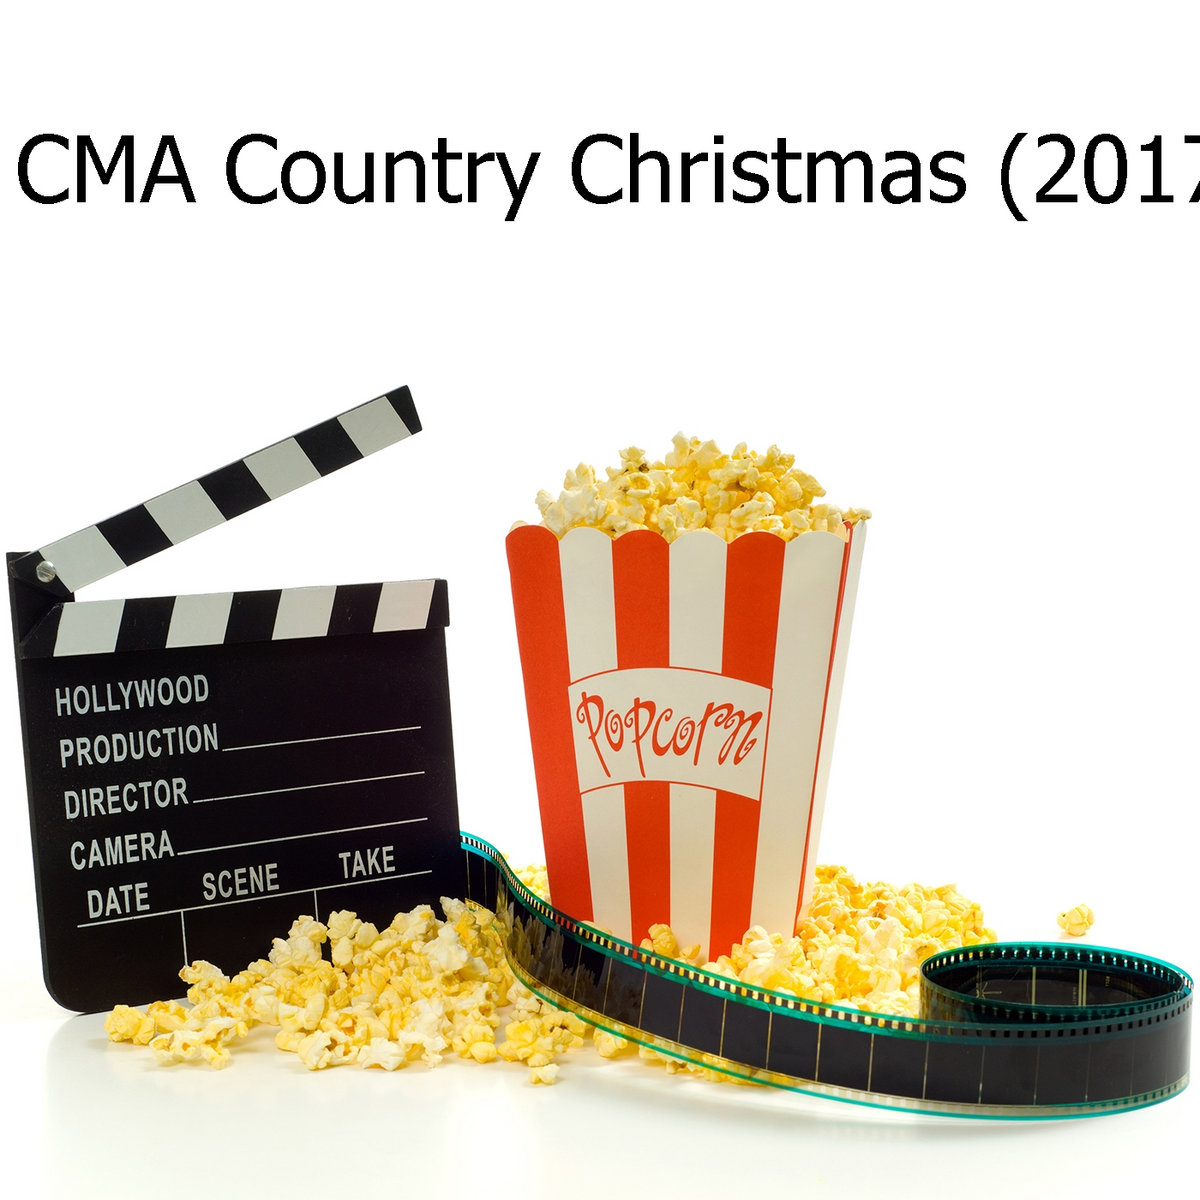 Full Watch CMA Country Christmas Torrent Movie High Definition 720P ...